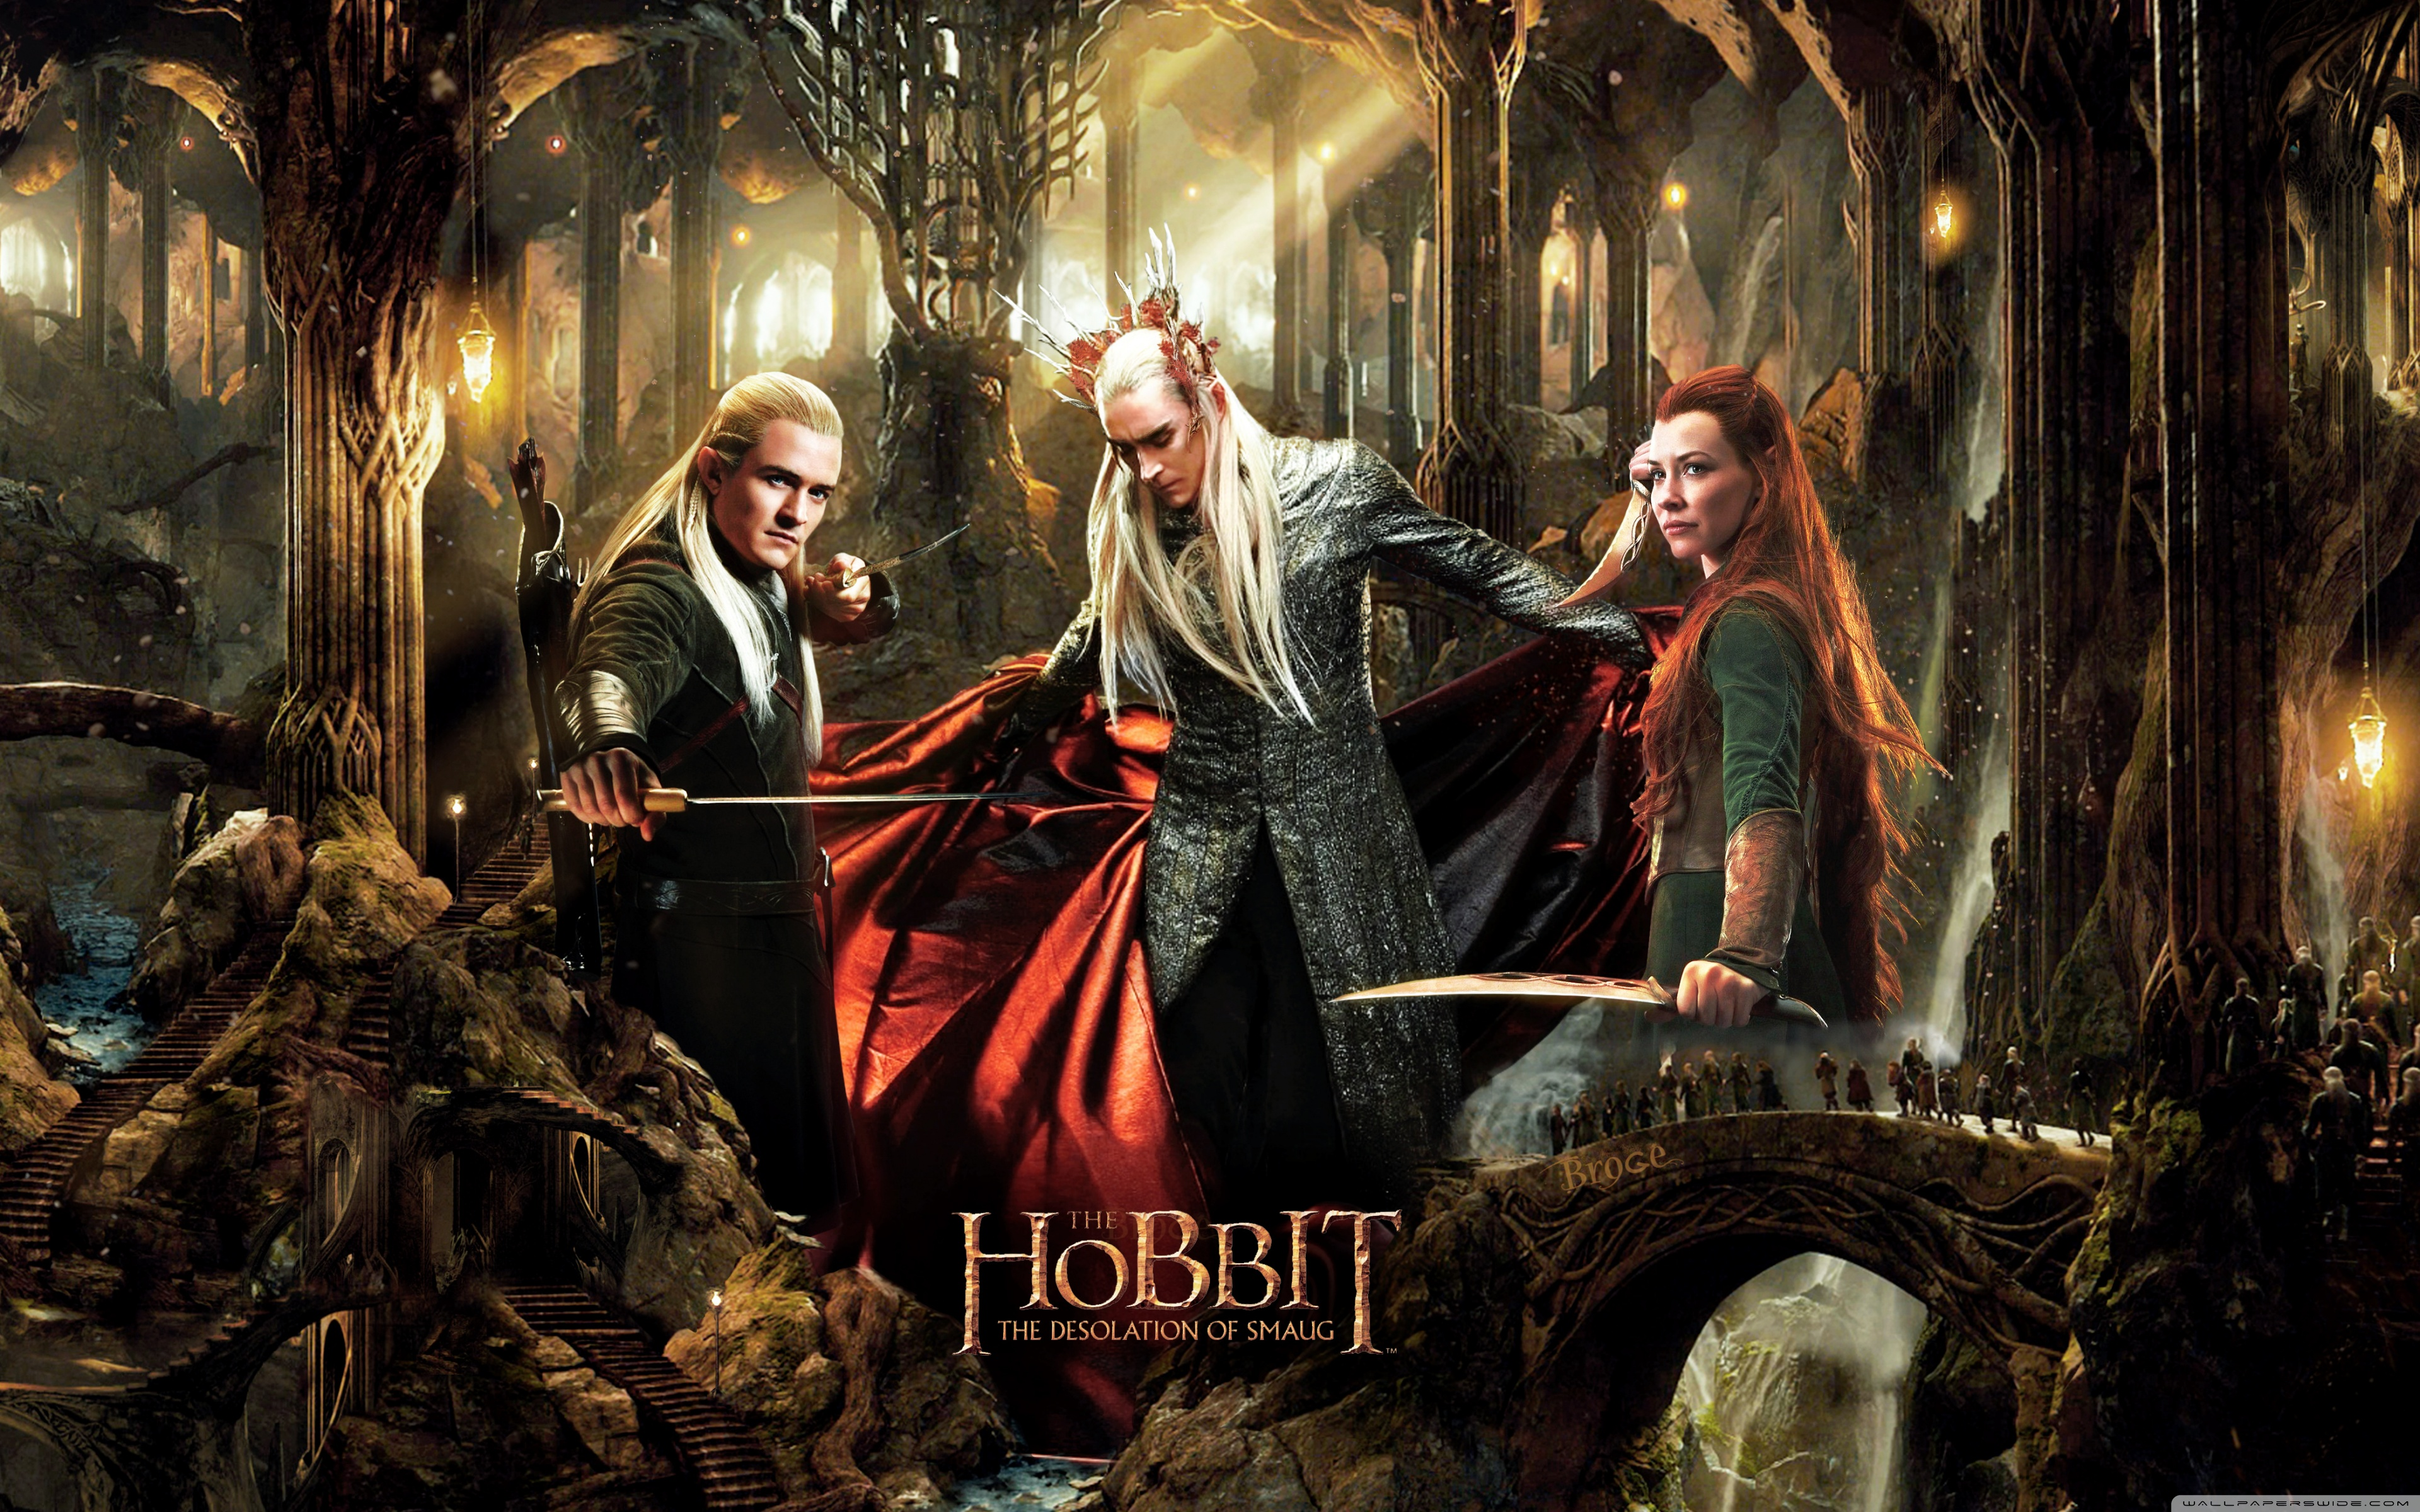 The Hobbit The Desolation of Smaug Wallpapers and Background 3840x2400